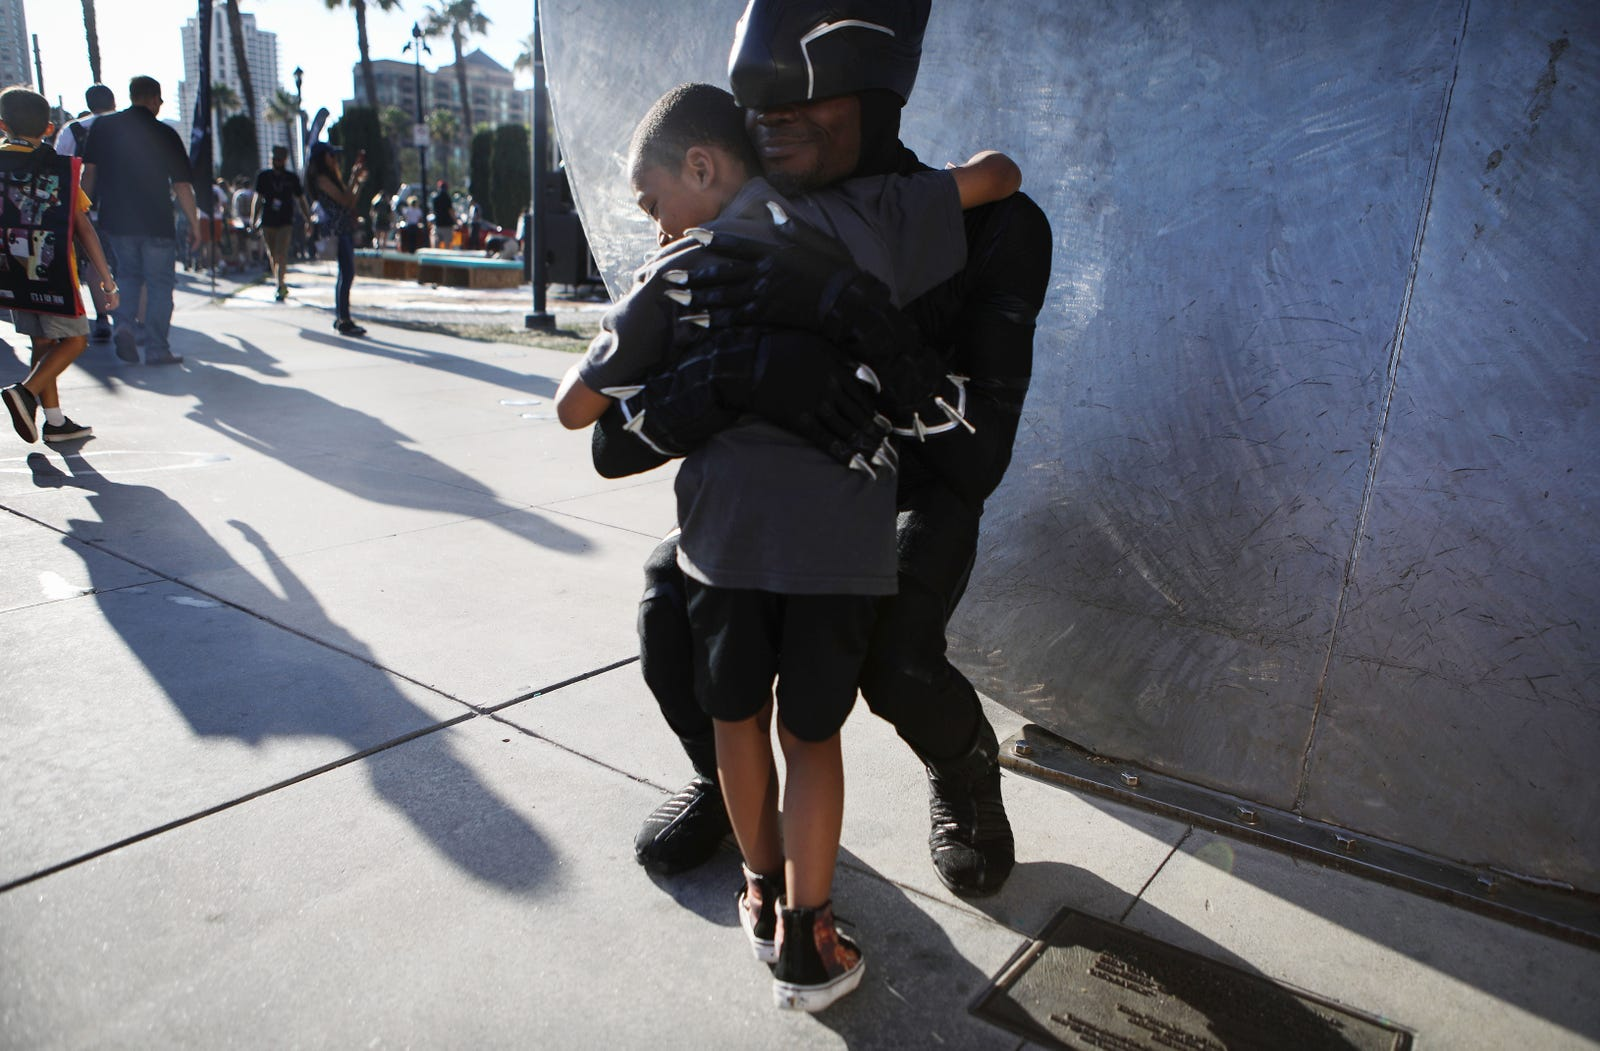 A boy hugs a cosplayer dressed as Black Panther outside San Diego Comic-Con on July 19, 2018 in San Diego, California.